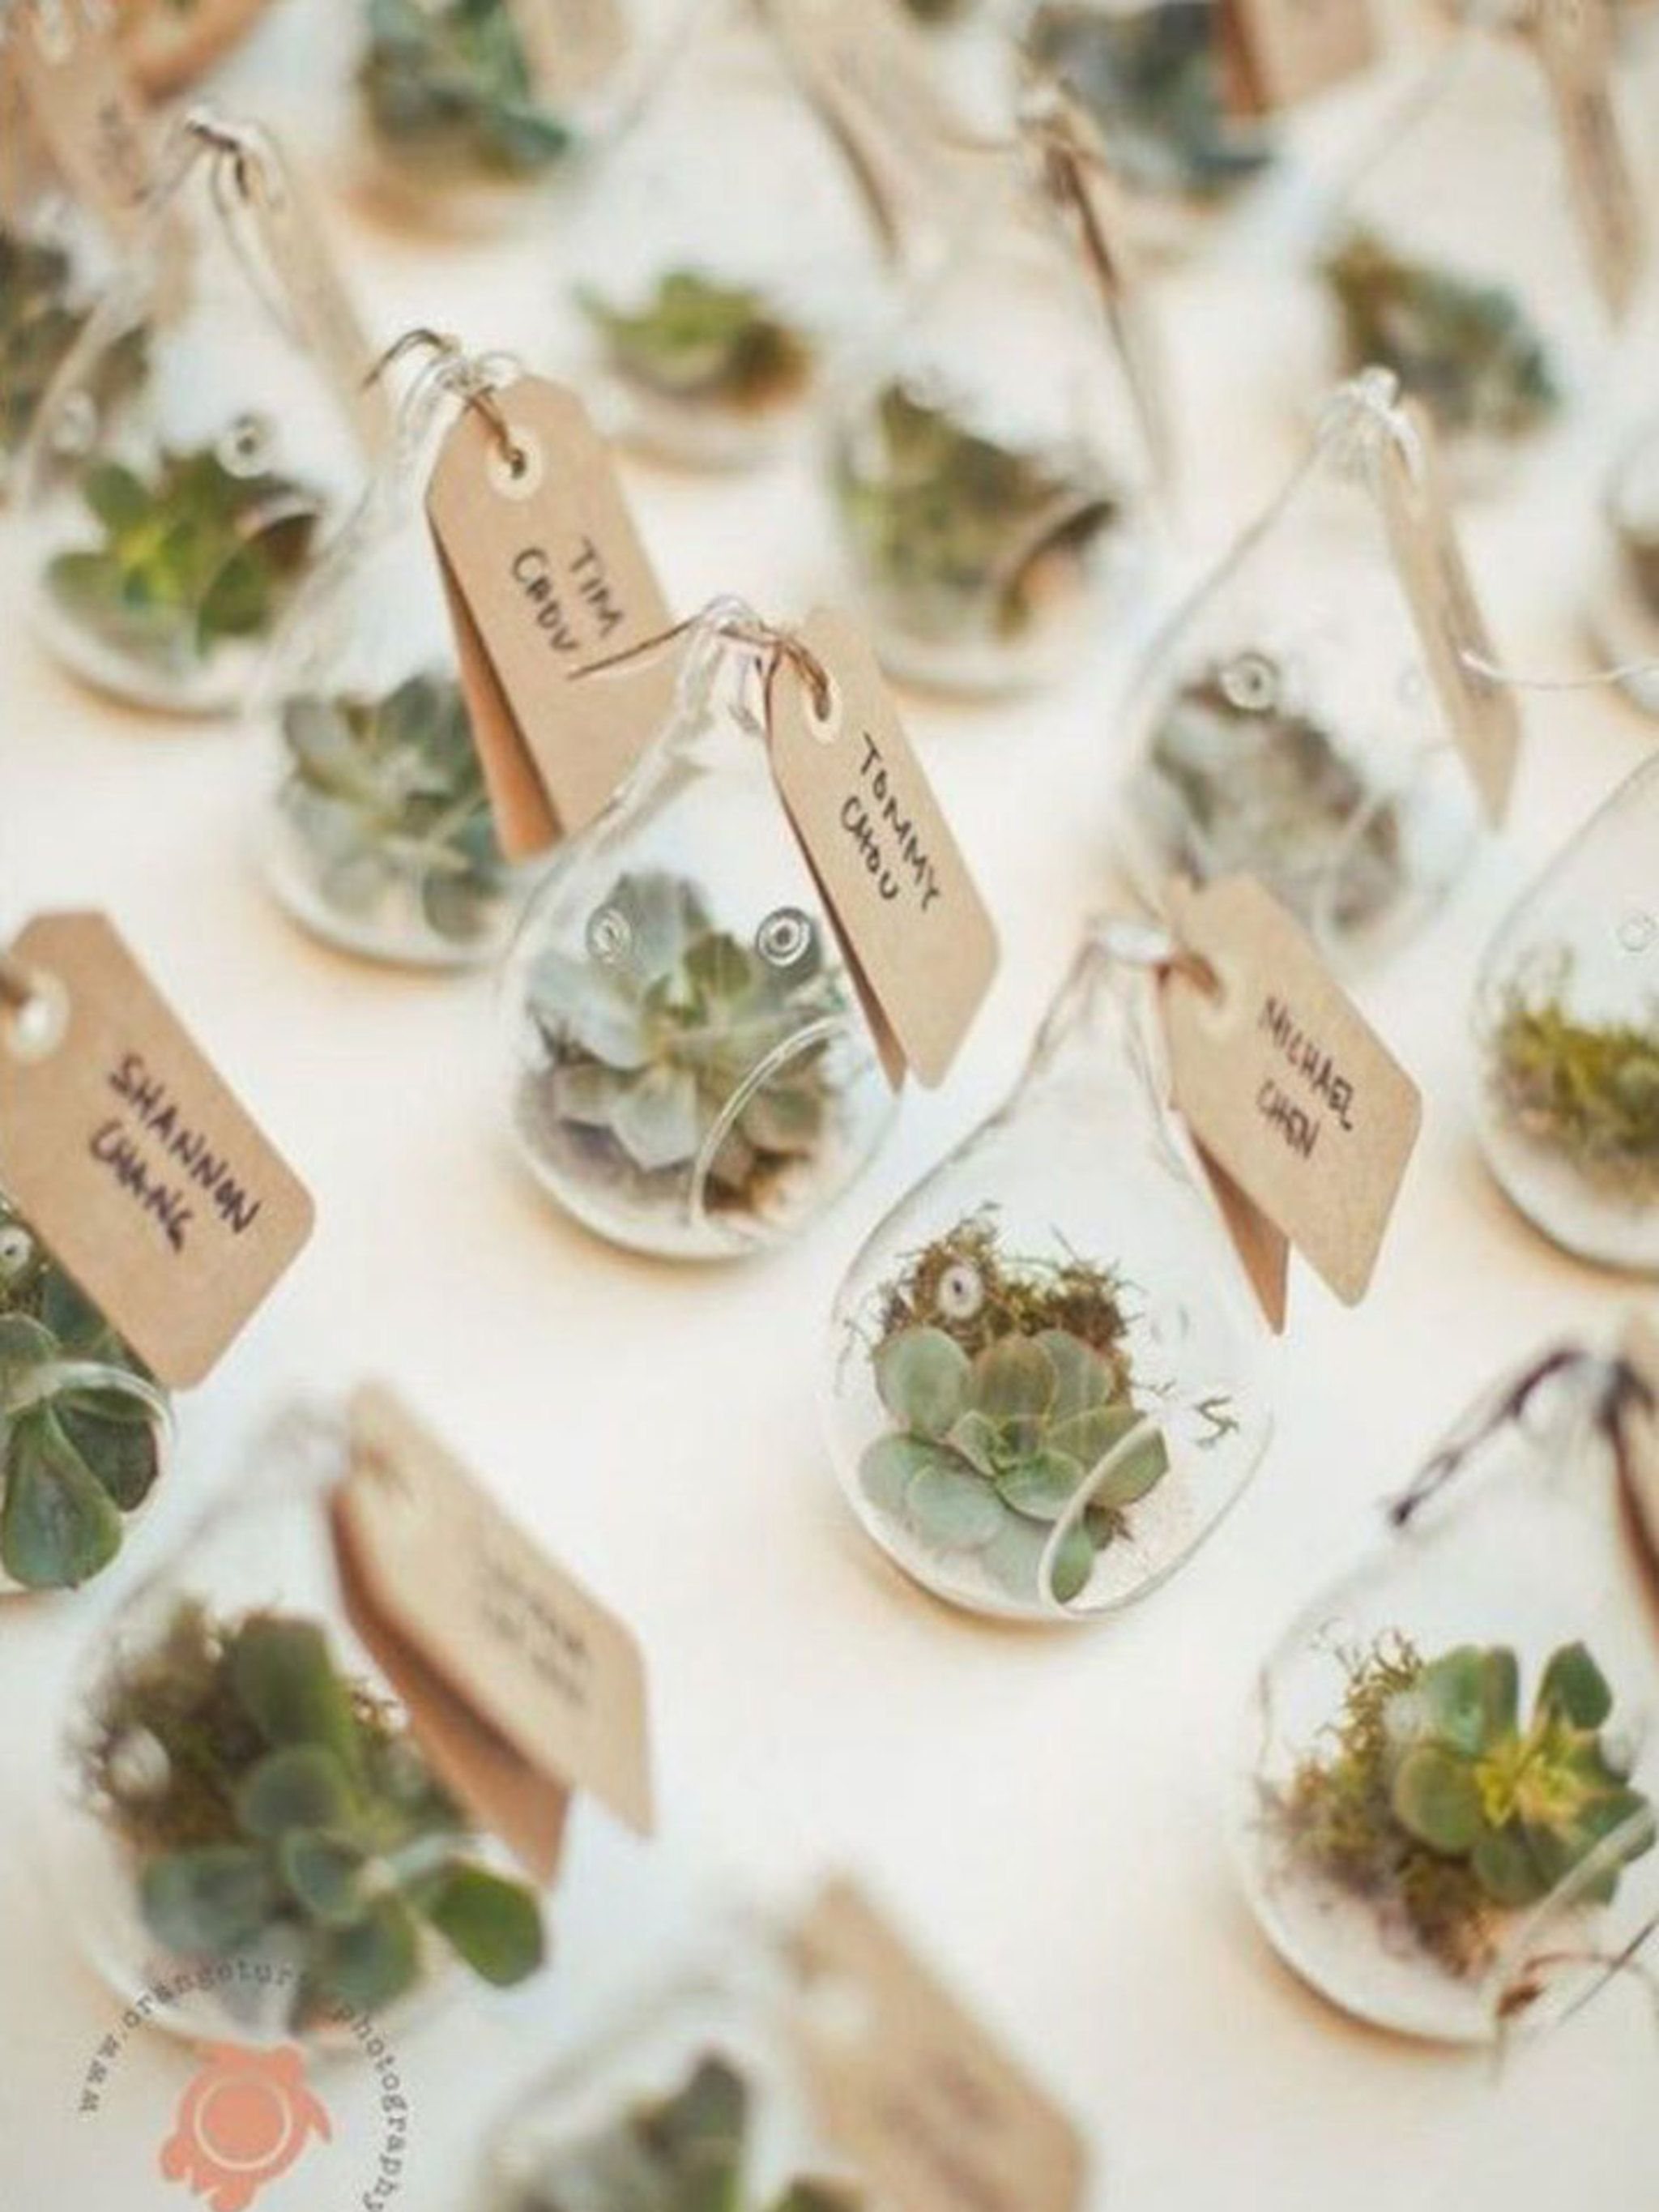 12 Original Wedding Favours To Delight Your Guests With